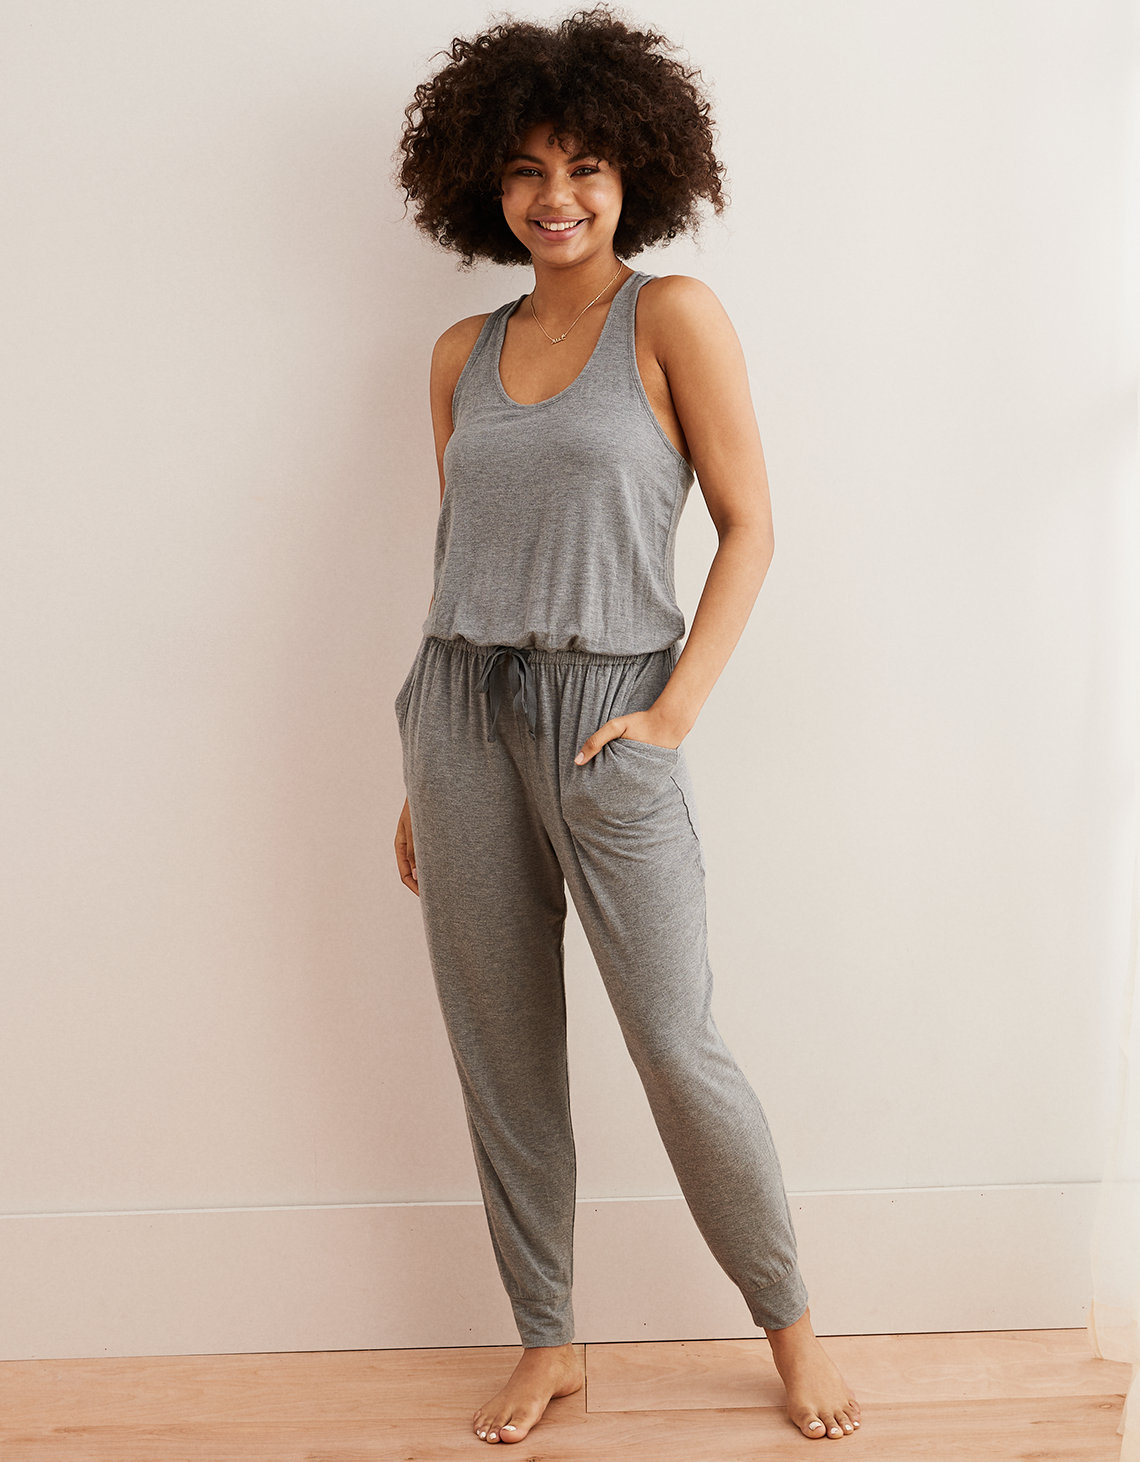 bb78a35f99e1 Aerie Track Jumpsuit. Placeholder image. Product Image